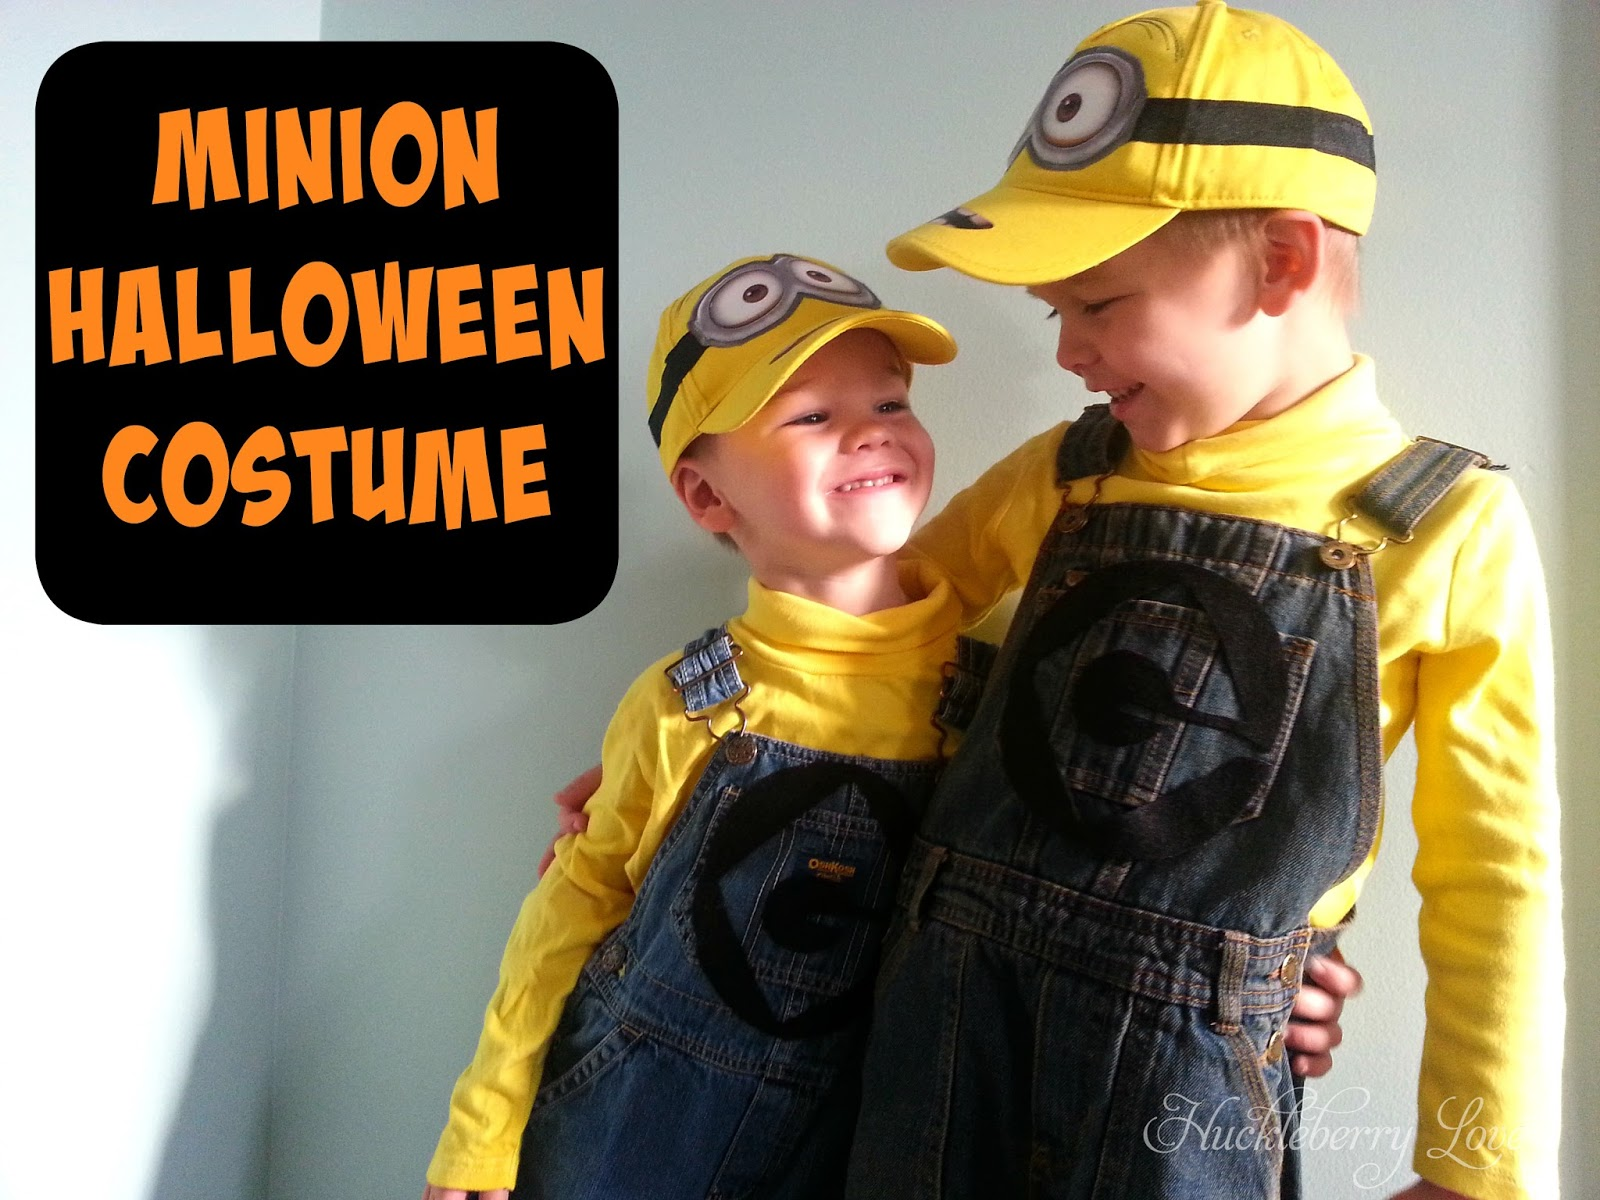 Simple Halloween Costume Despicable Me Minion  sc 1 st  Huckleberry Love & Huckleberry Love: Simple Halloween Costume Despicable Me Minion